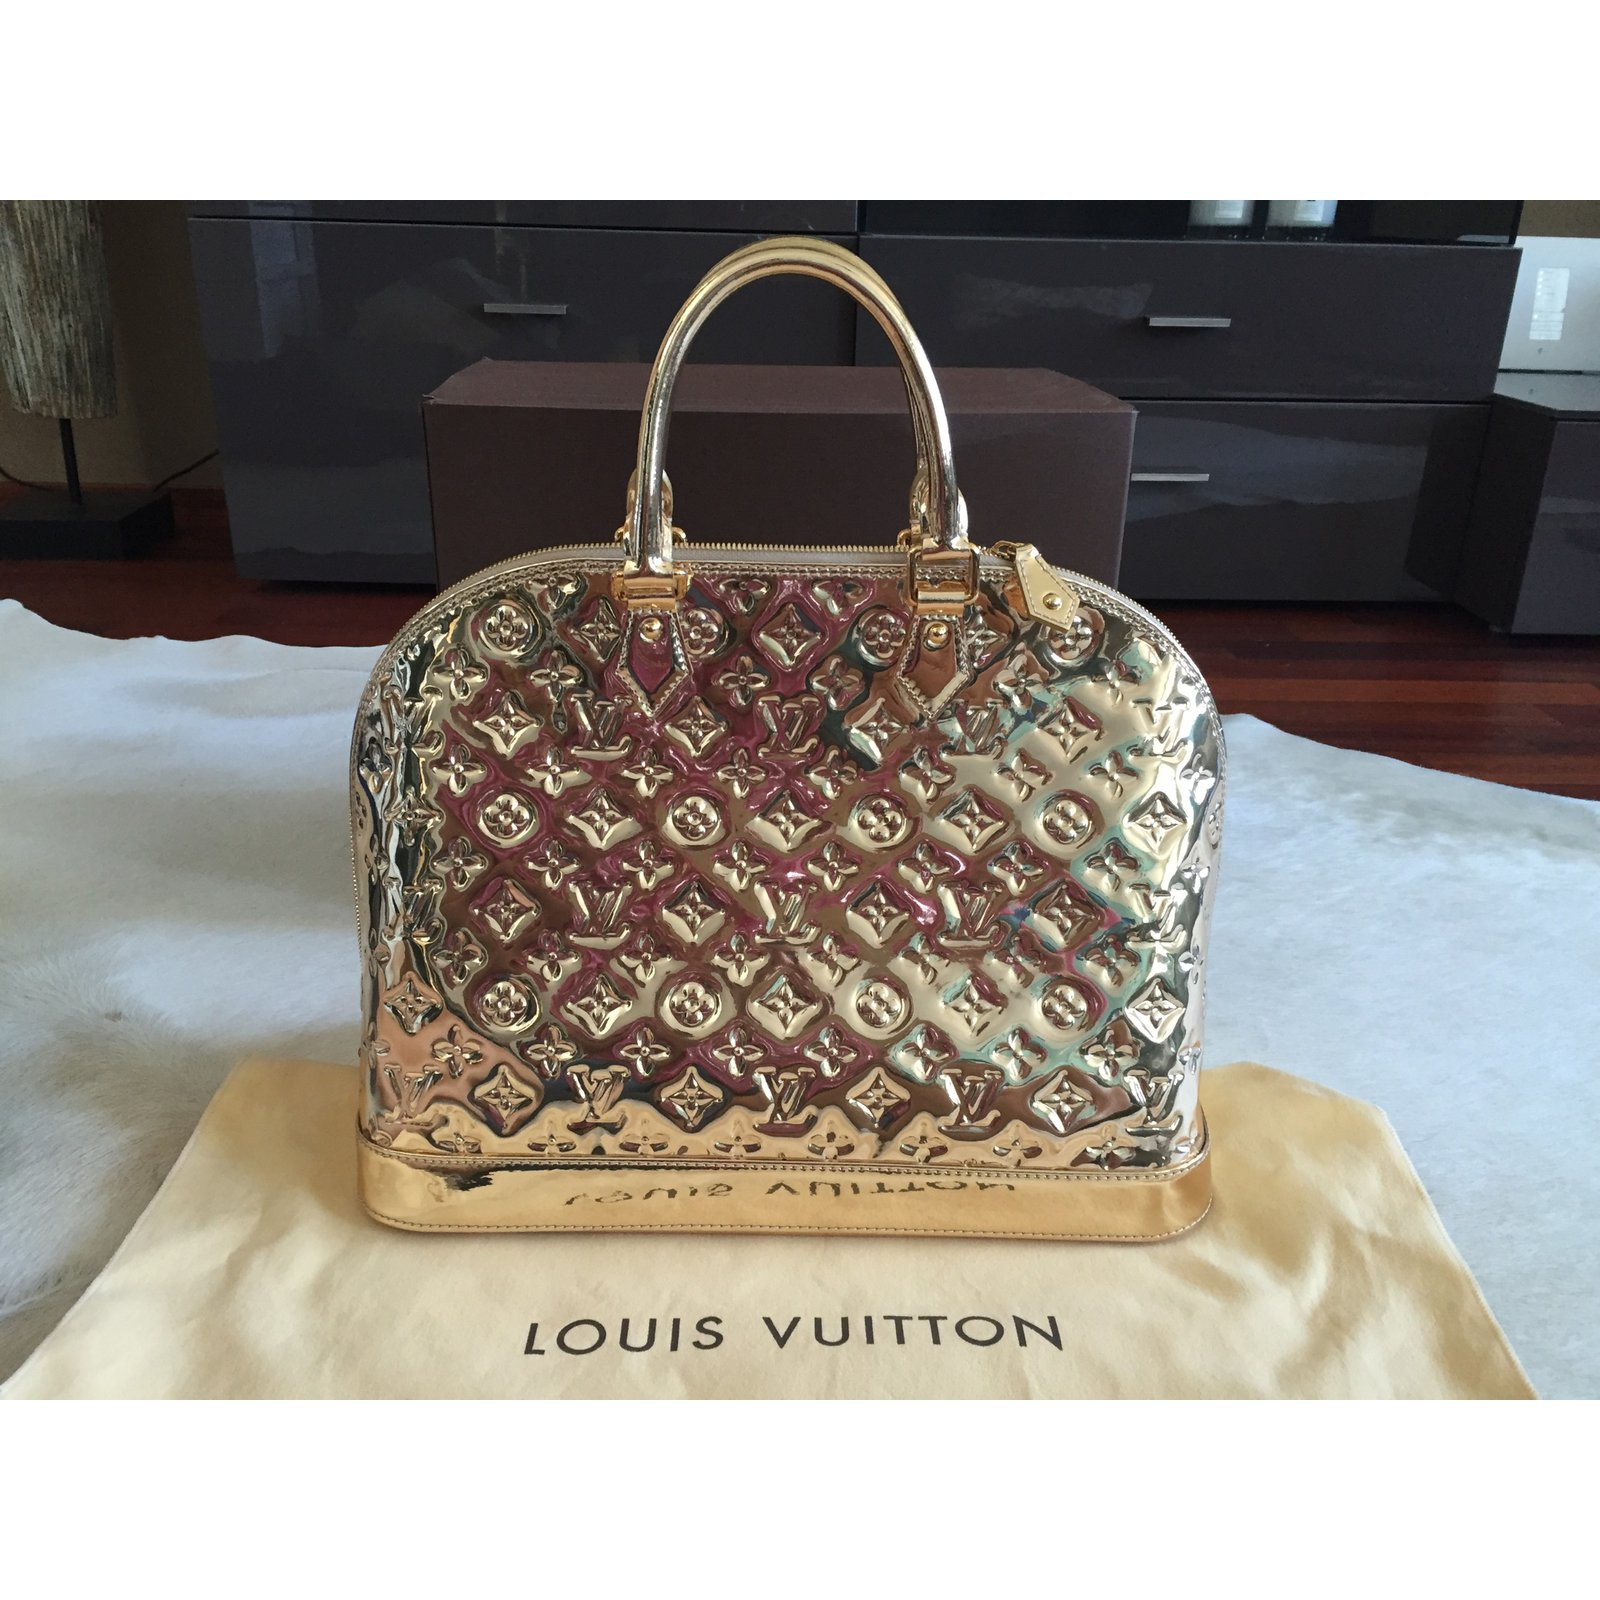 7c3c14acfeba Facebook · Pin This. Louis Vuitton ALMA MM MIROIR DORE GOLD - SPECIAL  EDITION Handbags Patent leather Golden ref.